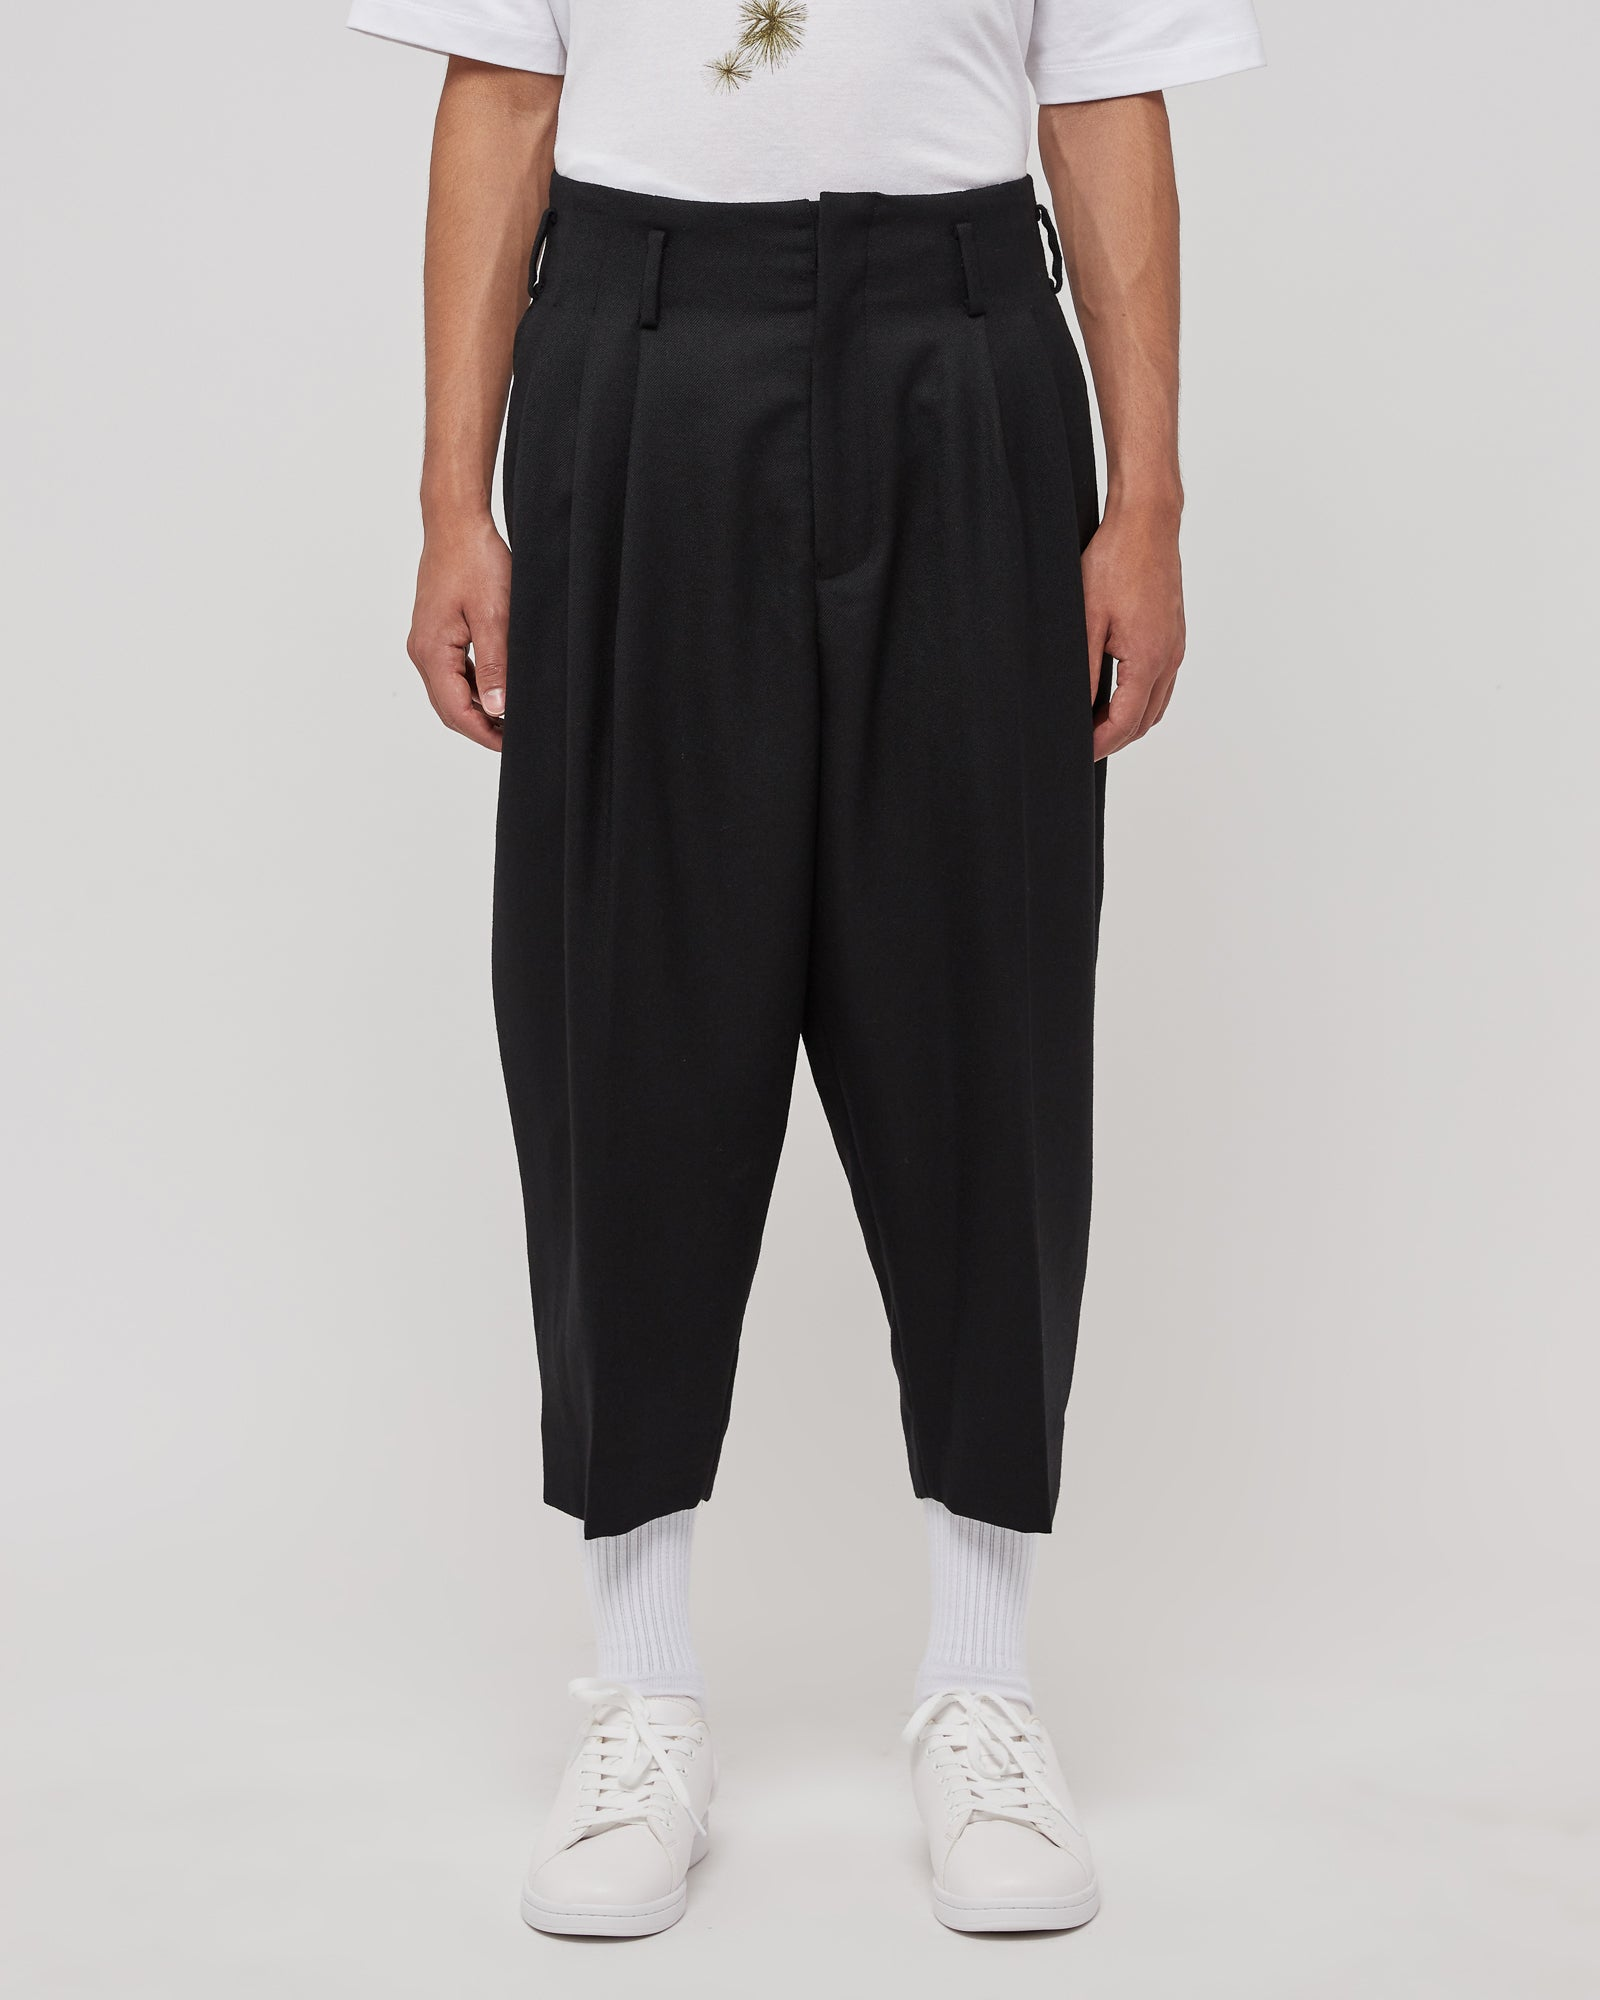 Zip Back Pants in Black